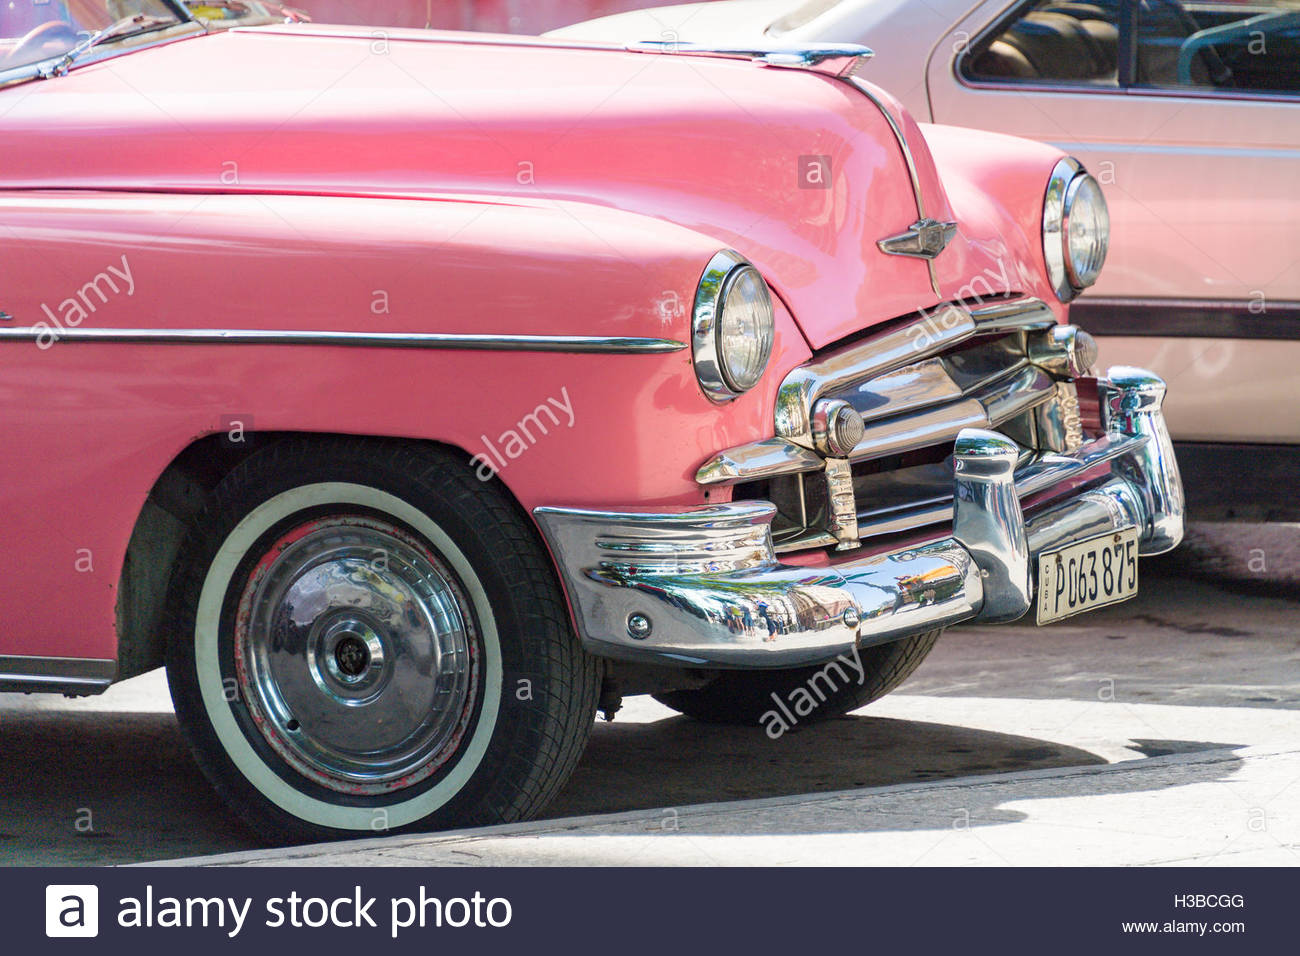 Chevrolet 1949. An old pink American car, used as a taxi in Cuba ...